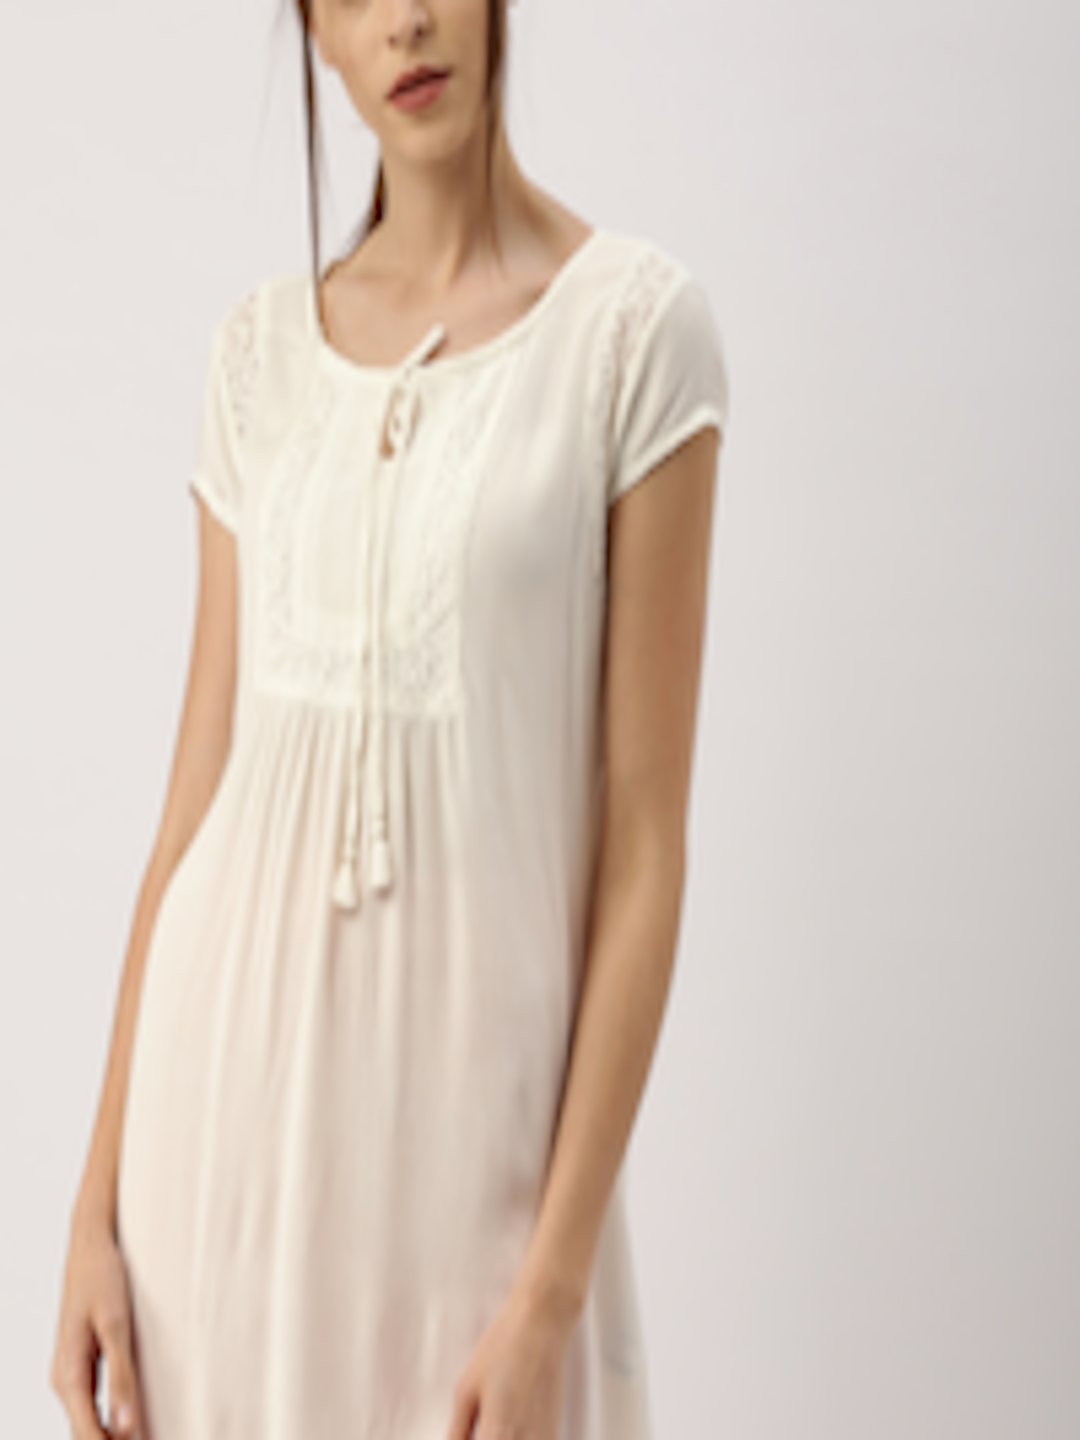 Buy All About You From Deepika Padukone Off White Lace ...